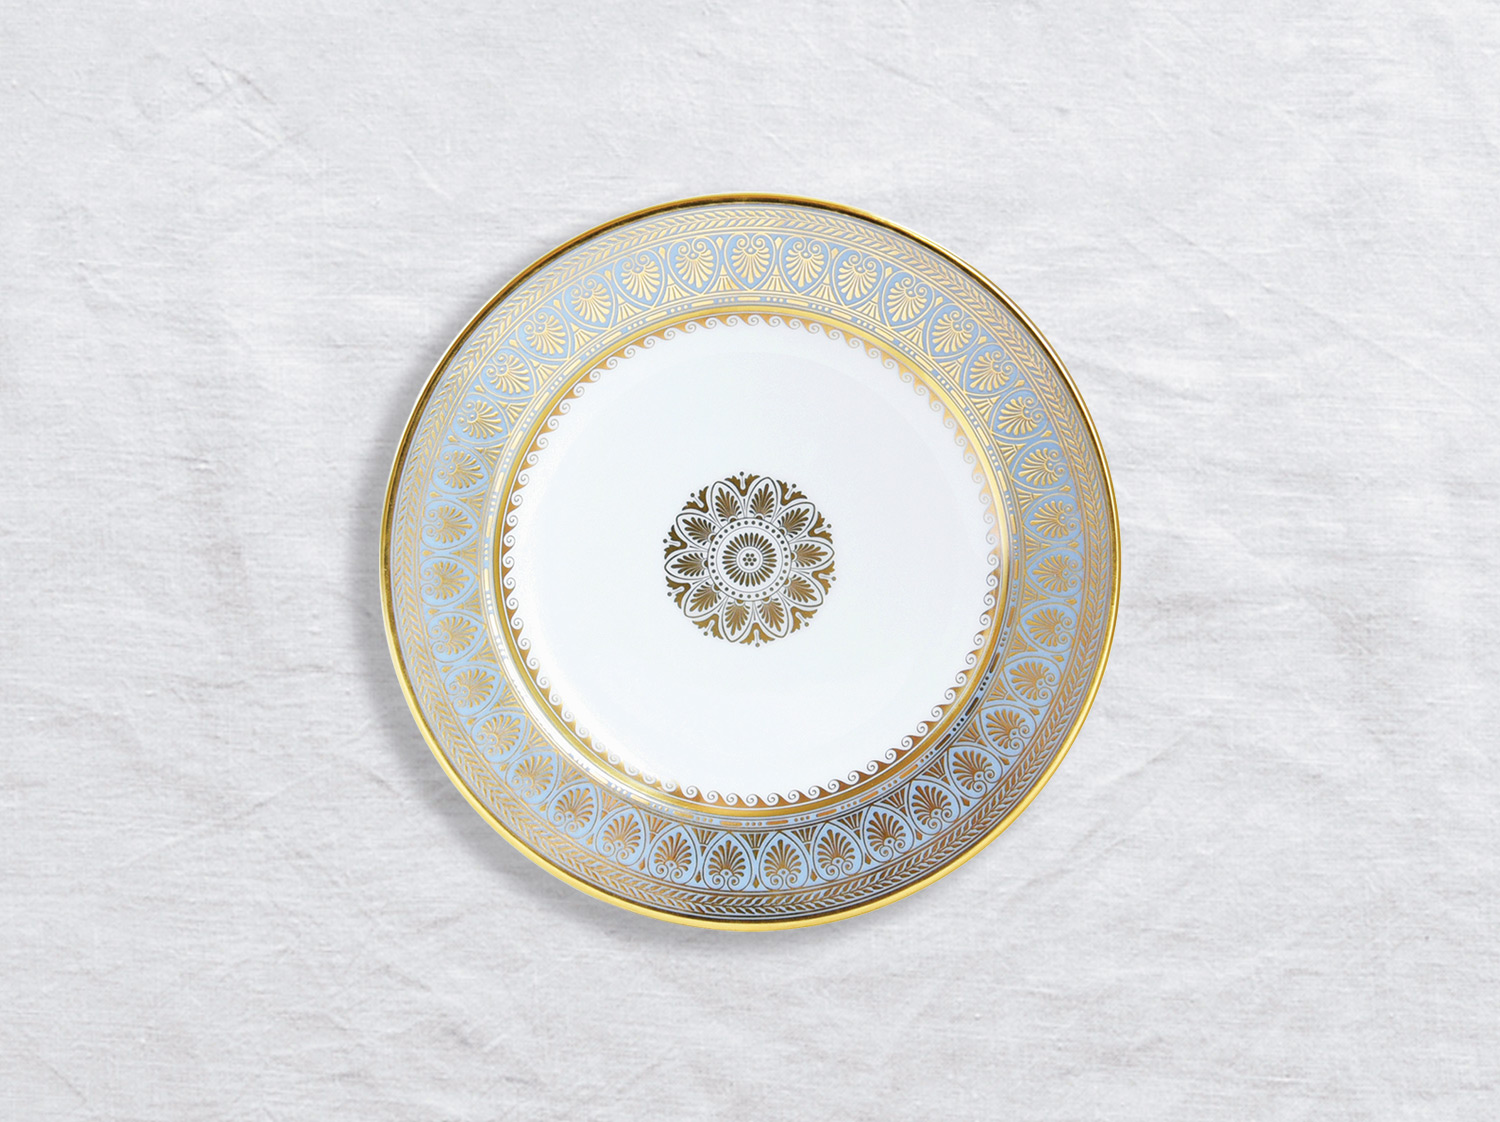 Assiette à pain 16 cm en porcelaine de la collection Elysee Bernardaud